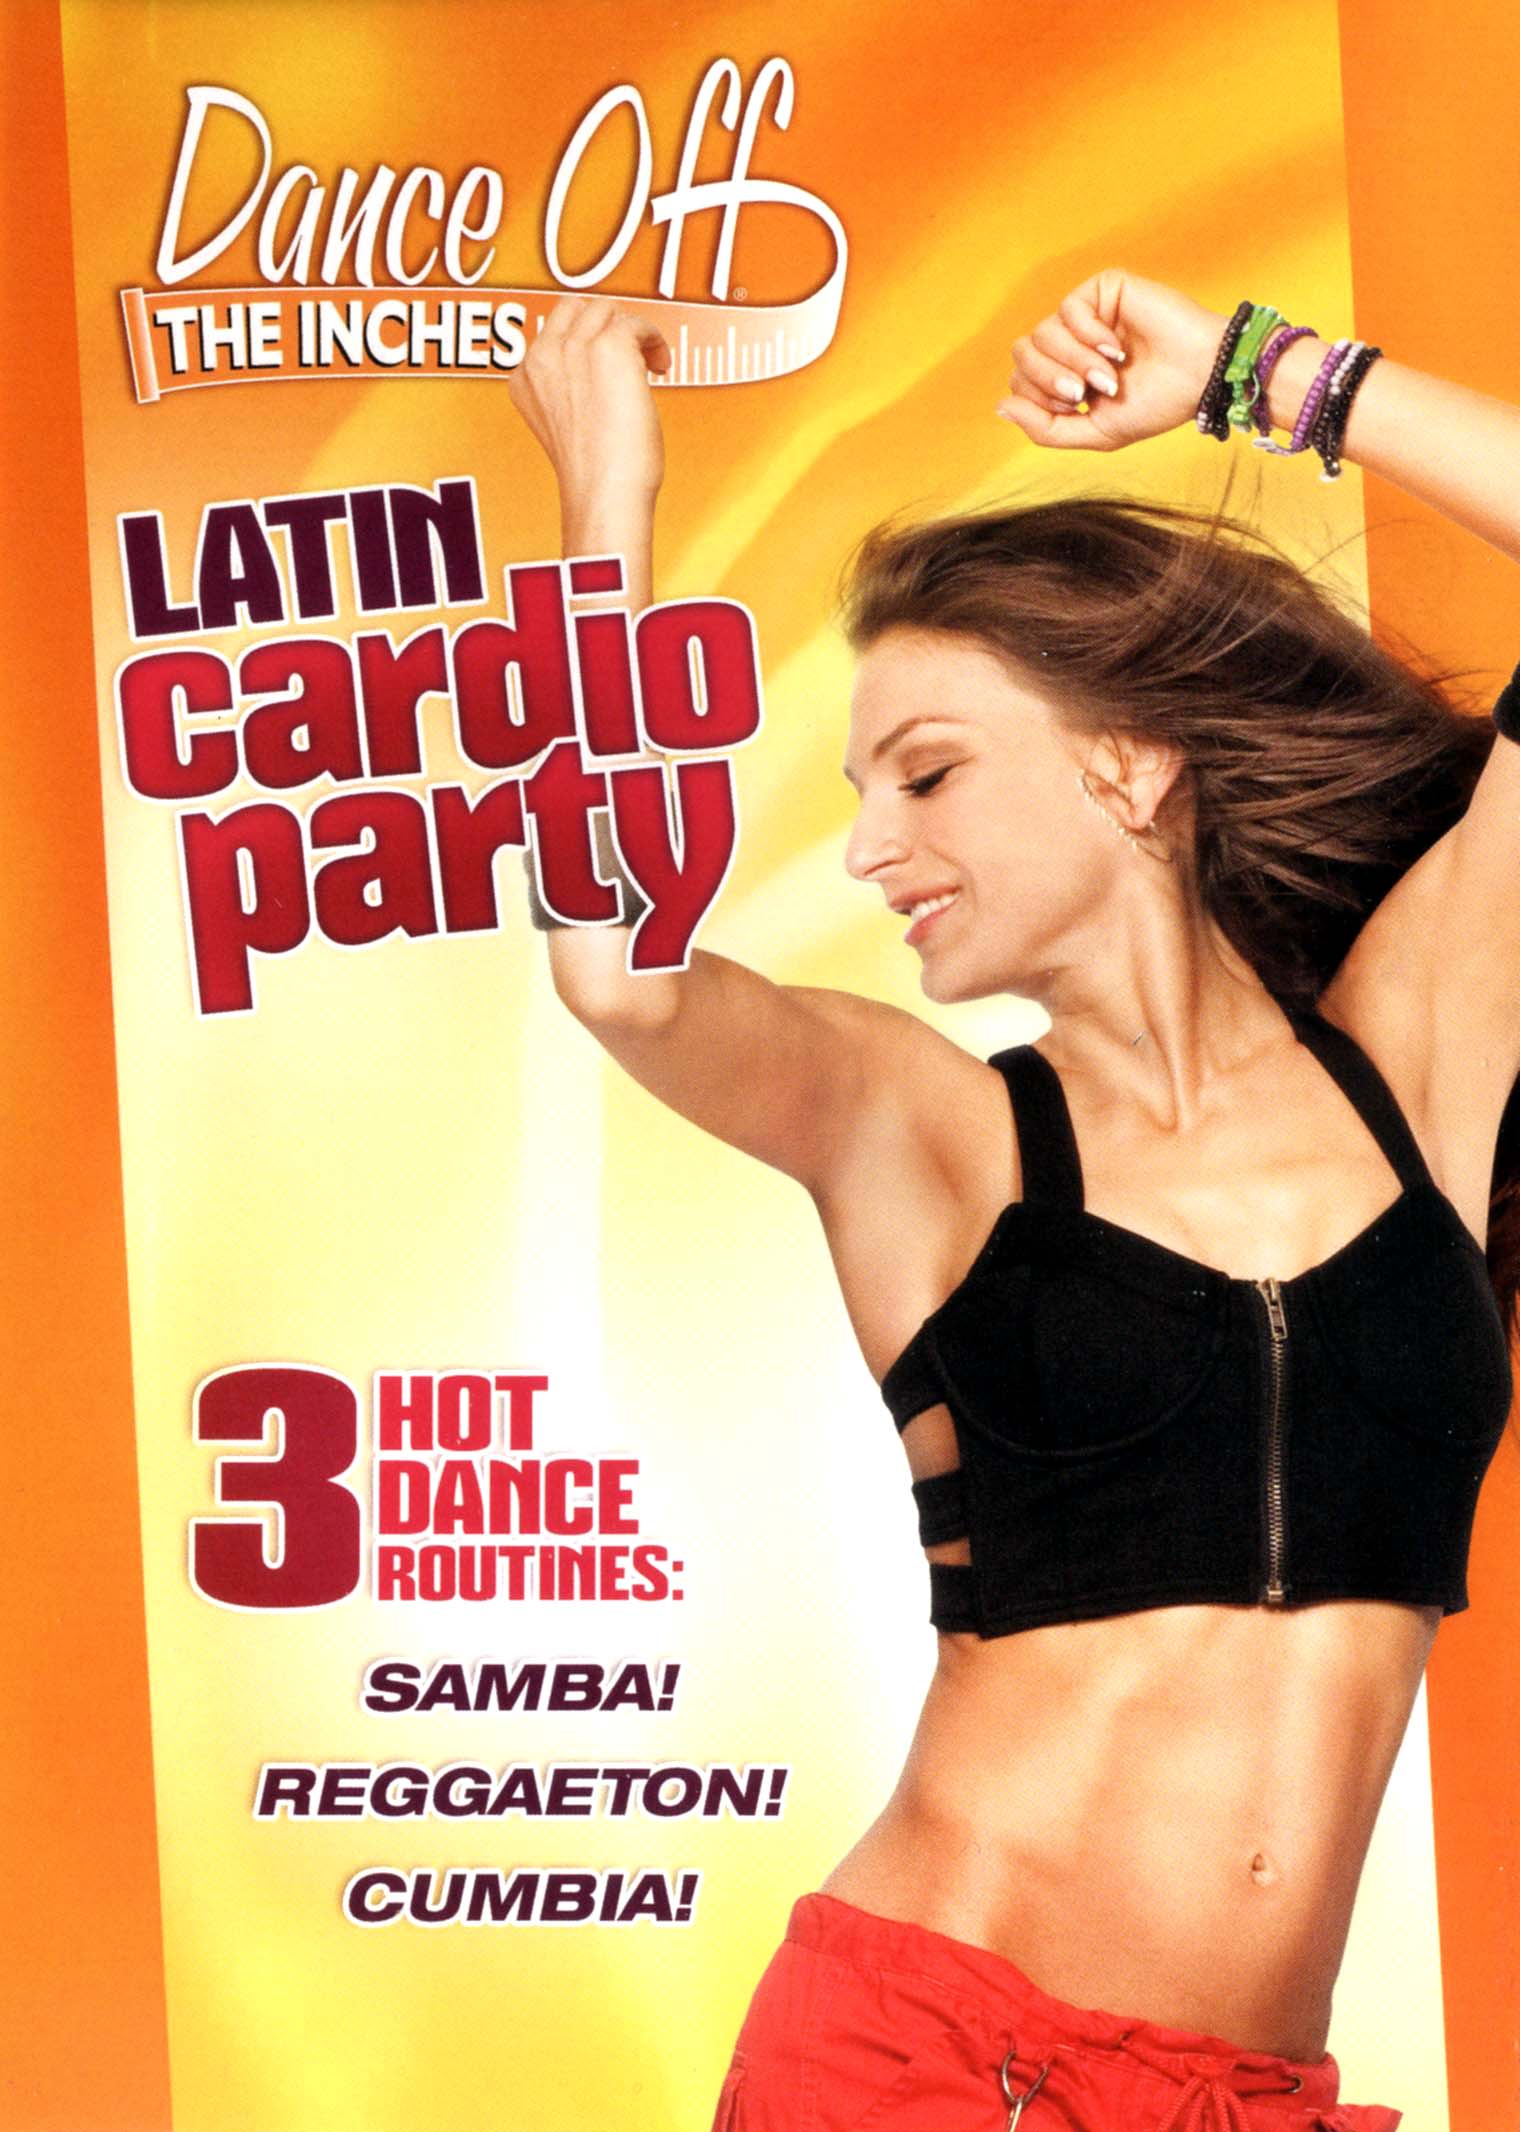 Dance Off the Inches: Latin Cardio Party